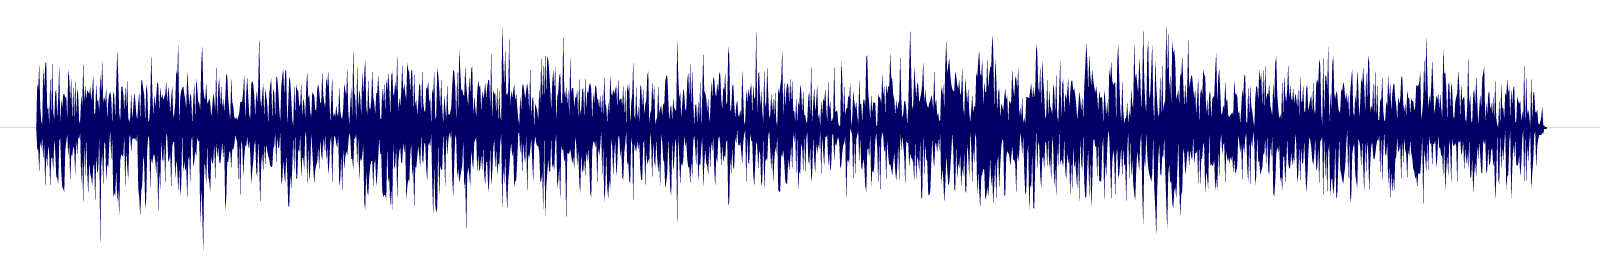 waveform of track #143865